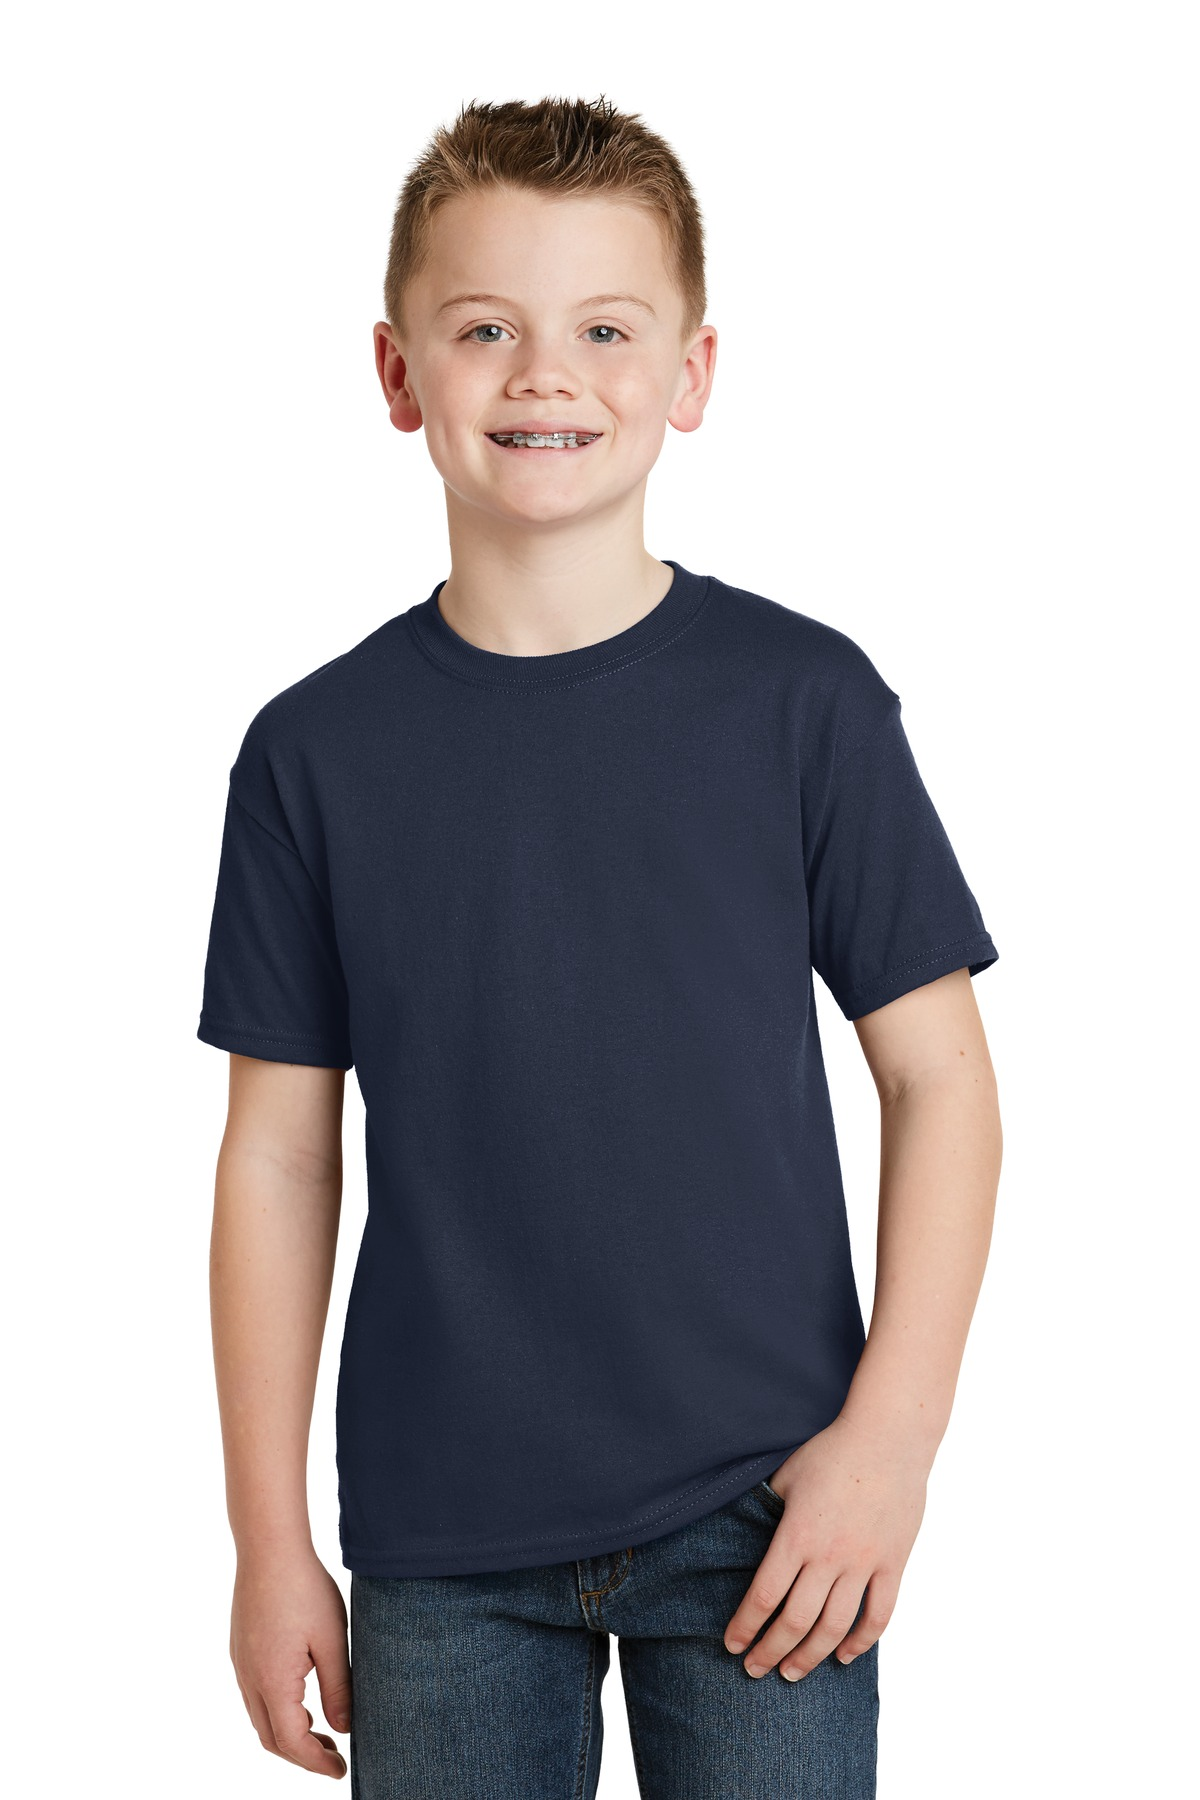 Hanes - Youth EcoSmart  50-50 Cotton-Poly T-Shirt. 5370